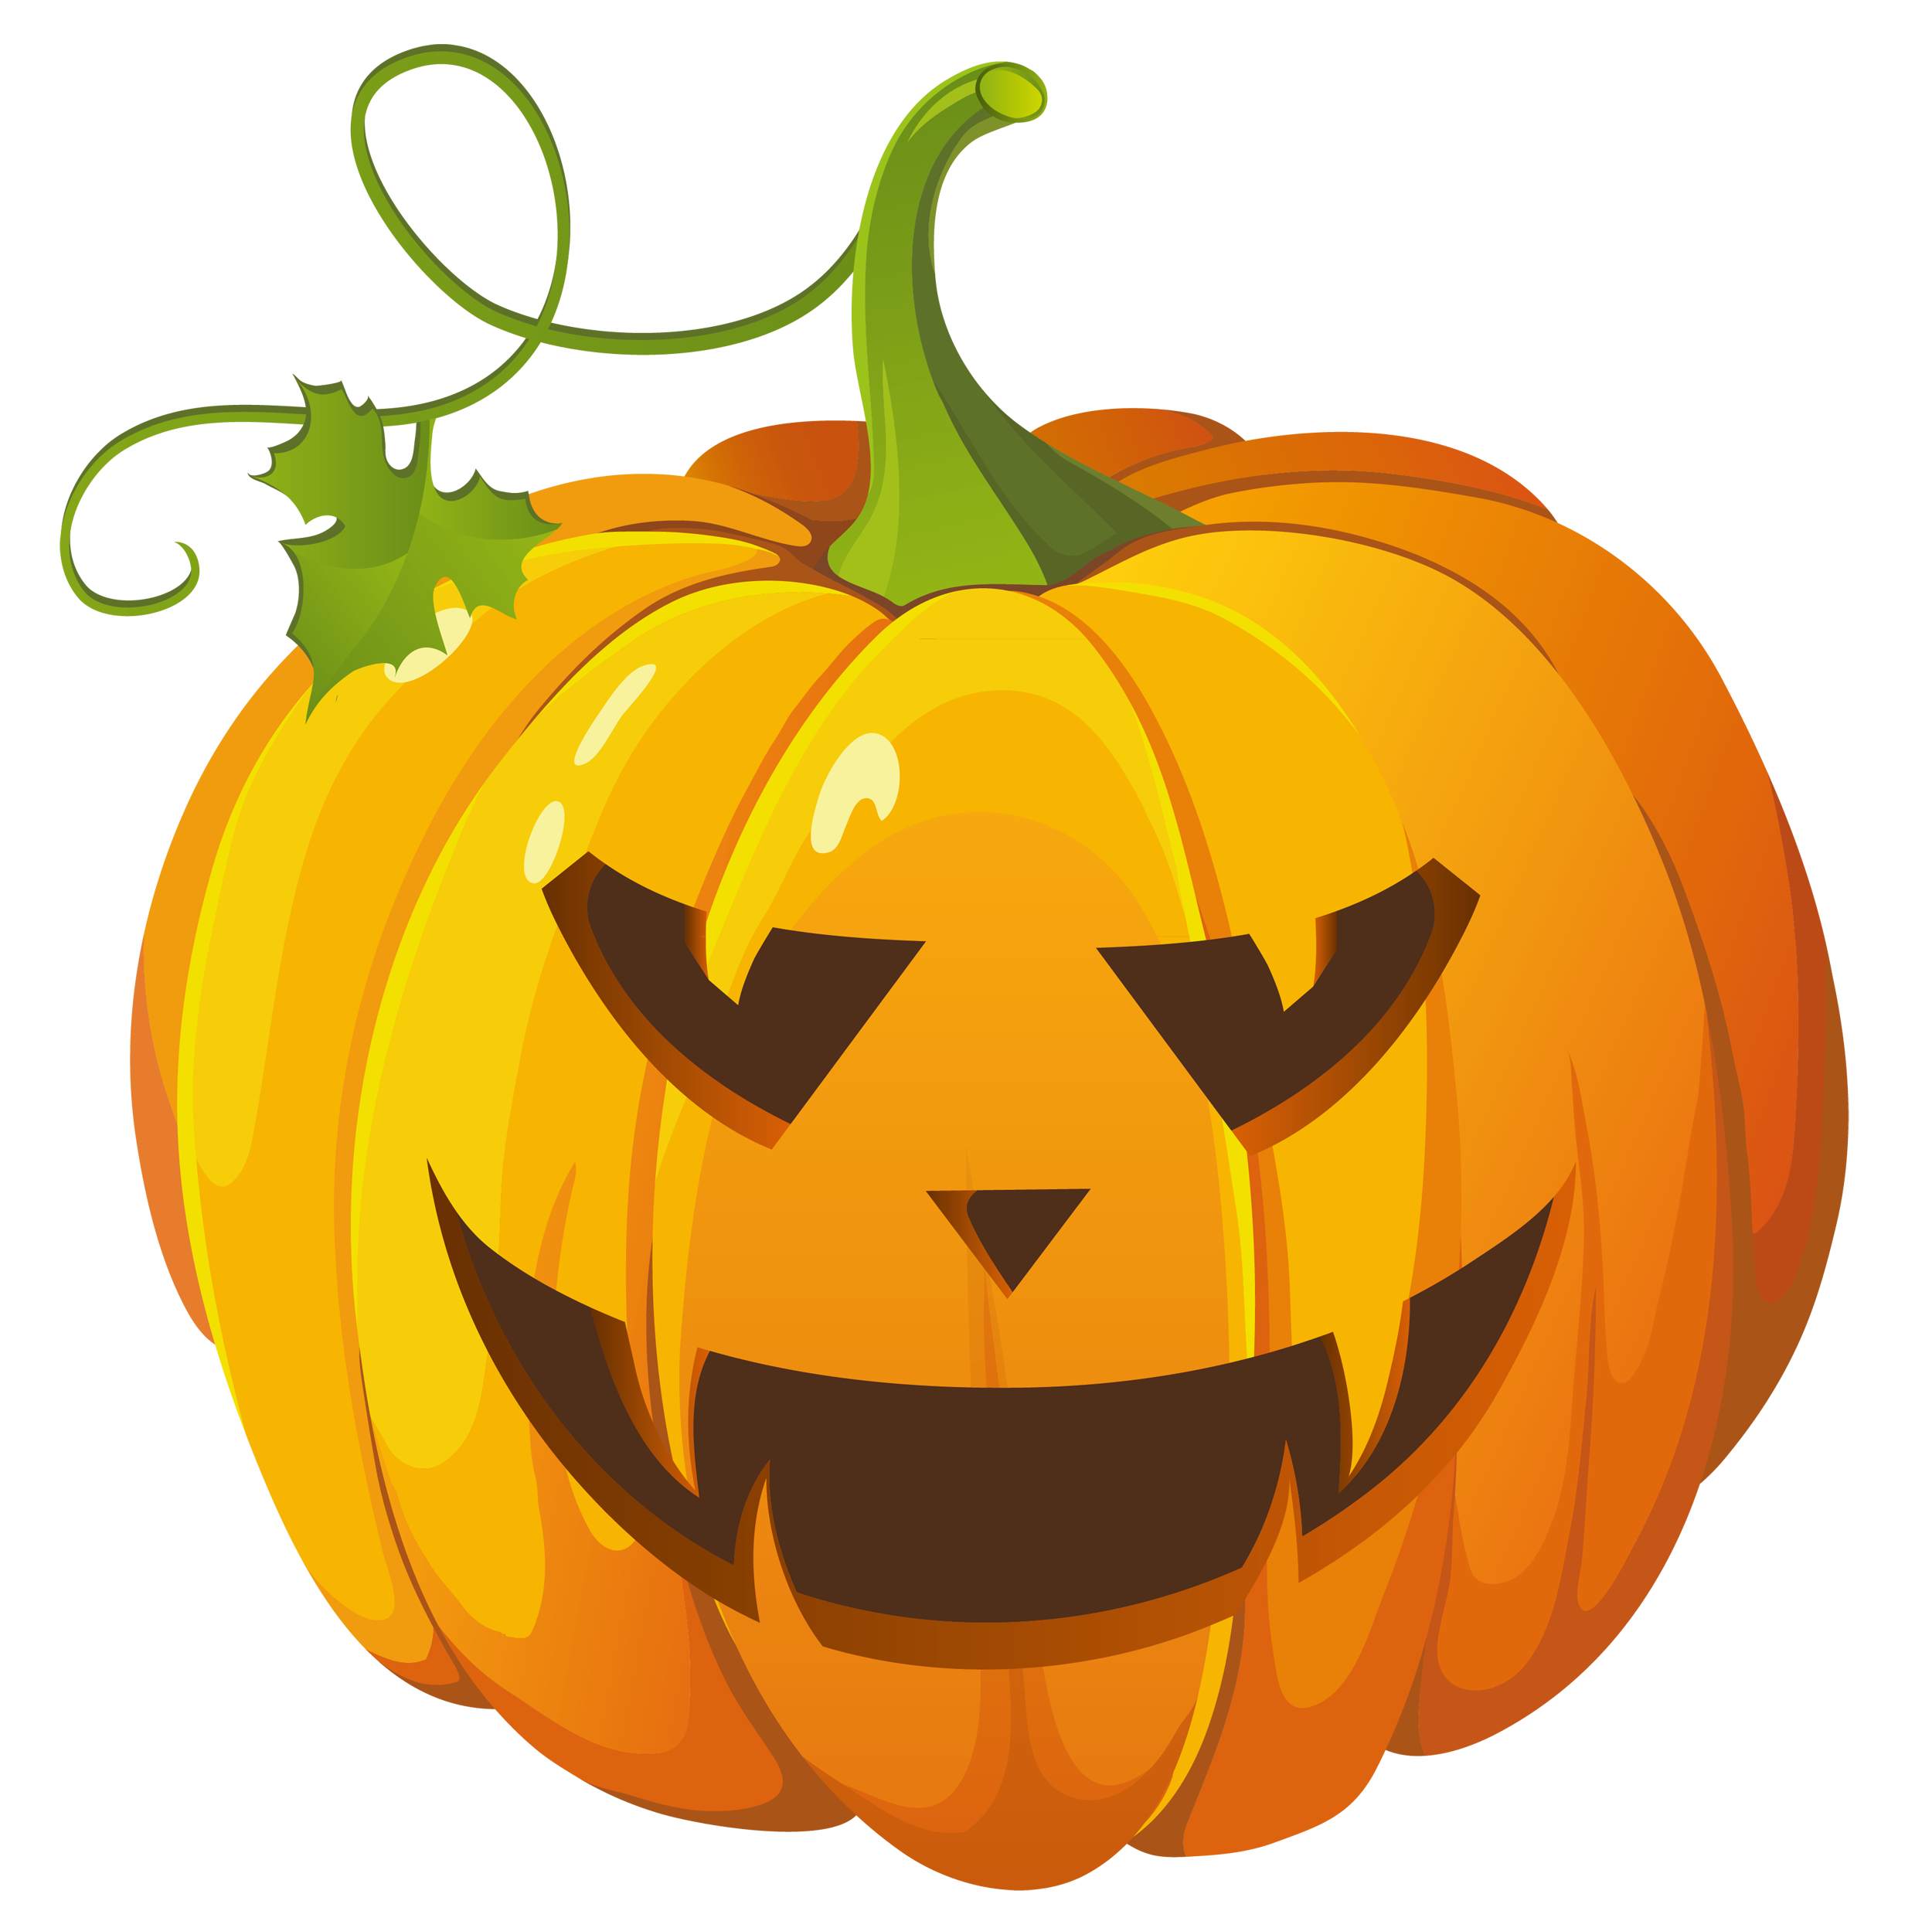 Silly pumpkin faces clipart image freeuse library Free Pumpkin Clipart at GetDrawings.com | Free for personal use Free ... image freeuse library